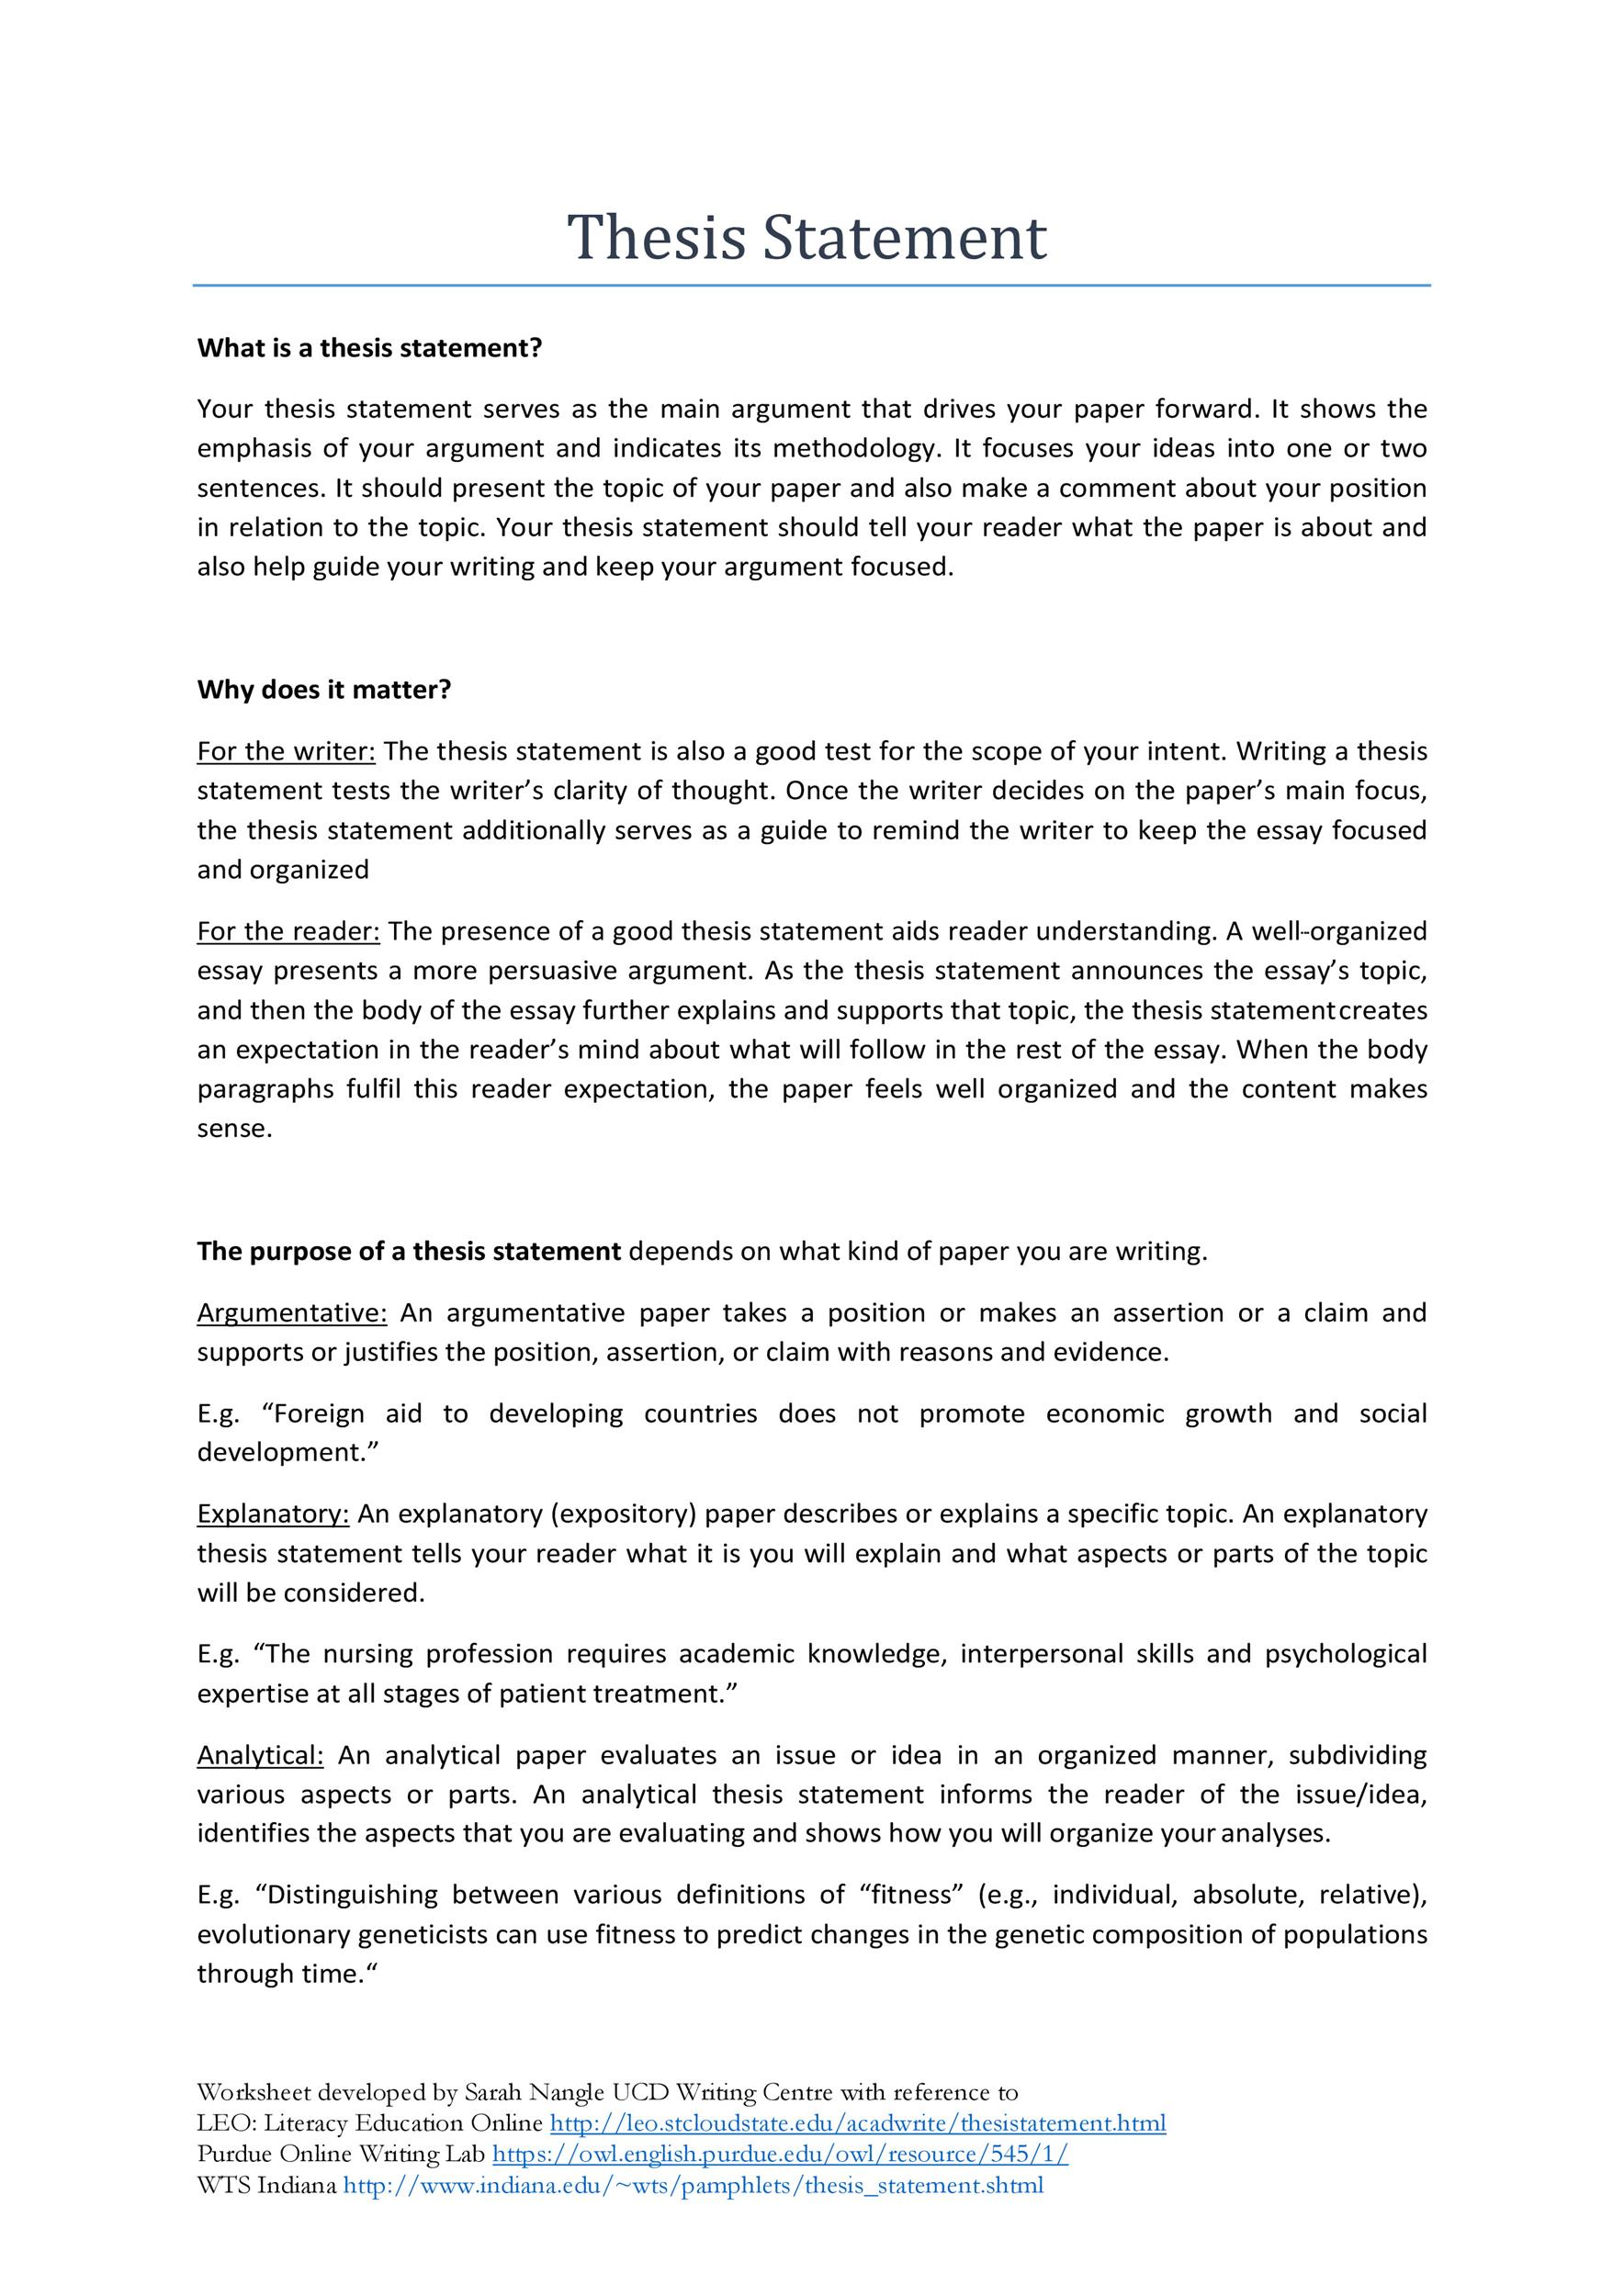 Free thesis statement template 10